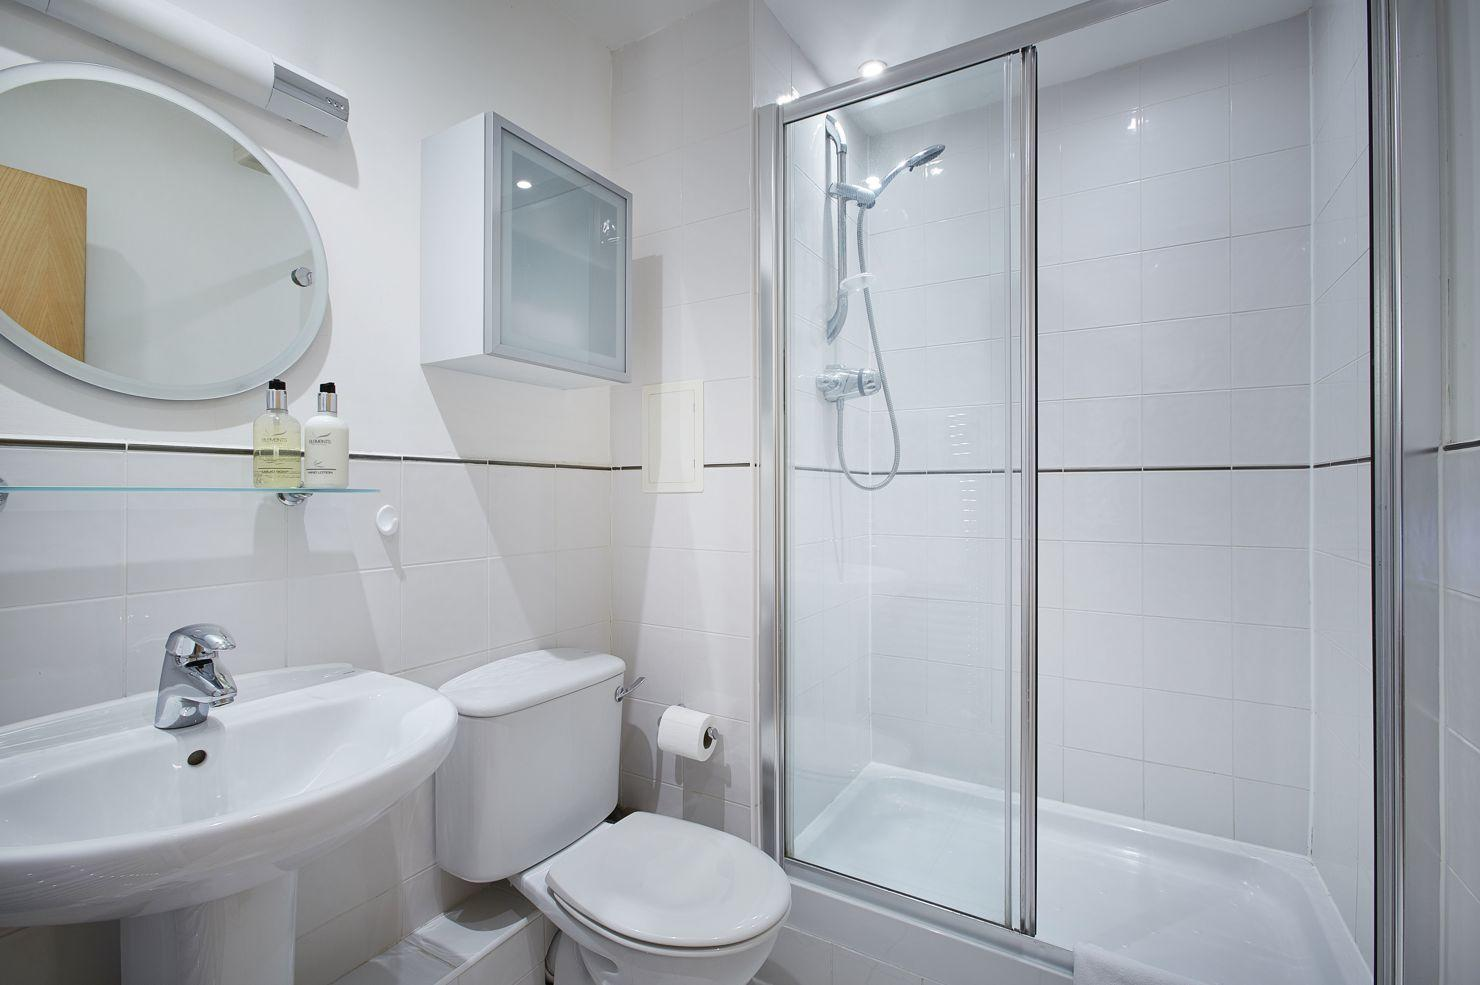 Serviced-Accommodation-Uxbridge,-West-London-Available-Now!-Book-Corporate-Serviced-Apartments-in-London!-Free-Wifi,-Lift-and-Parking!